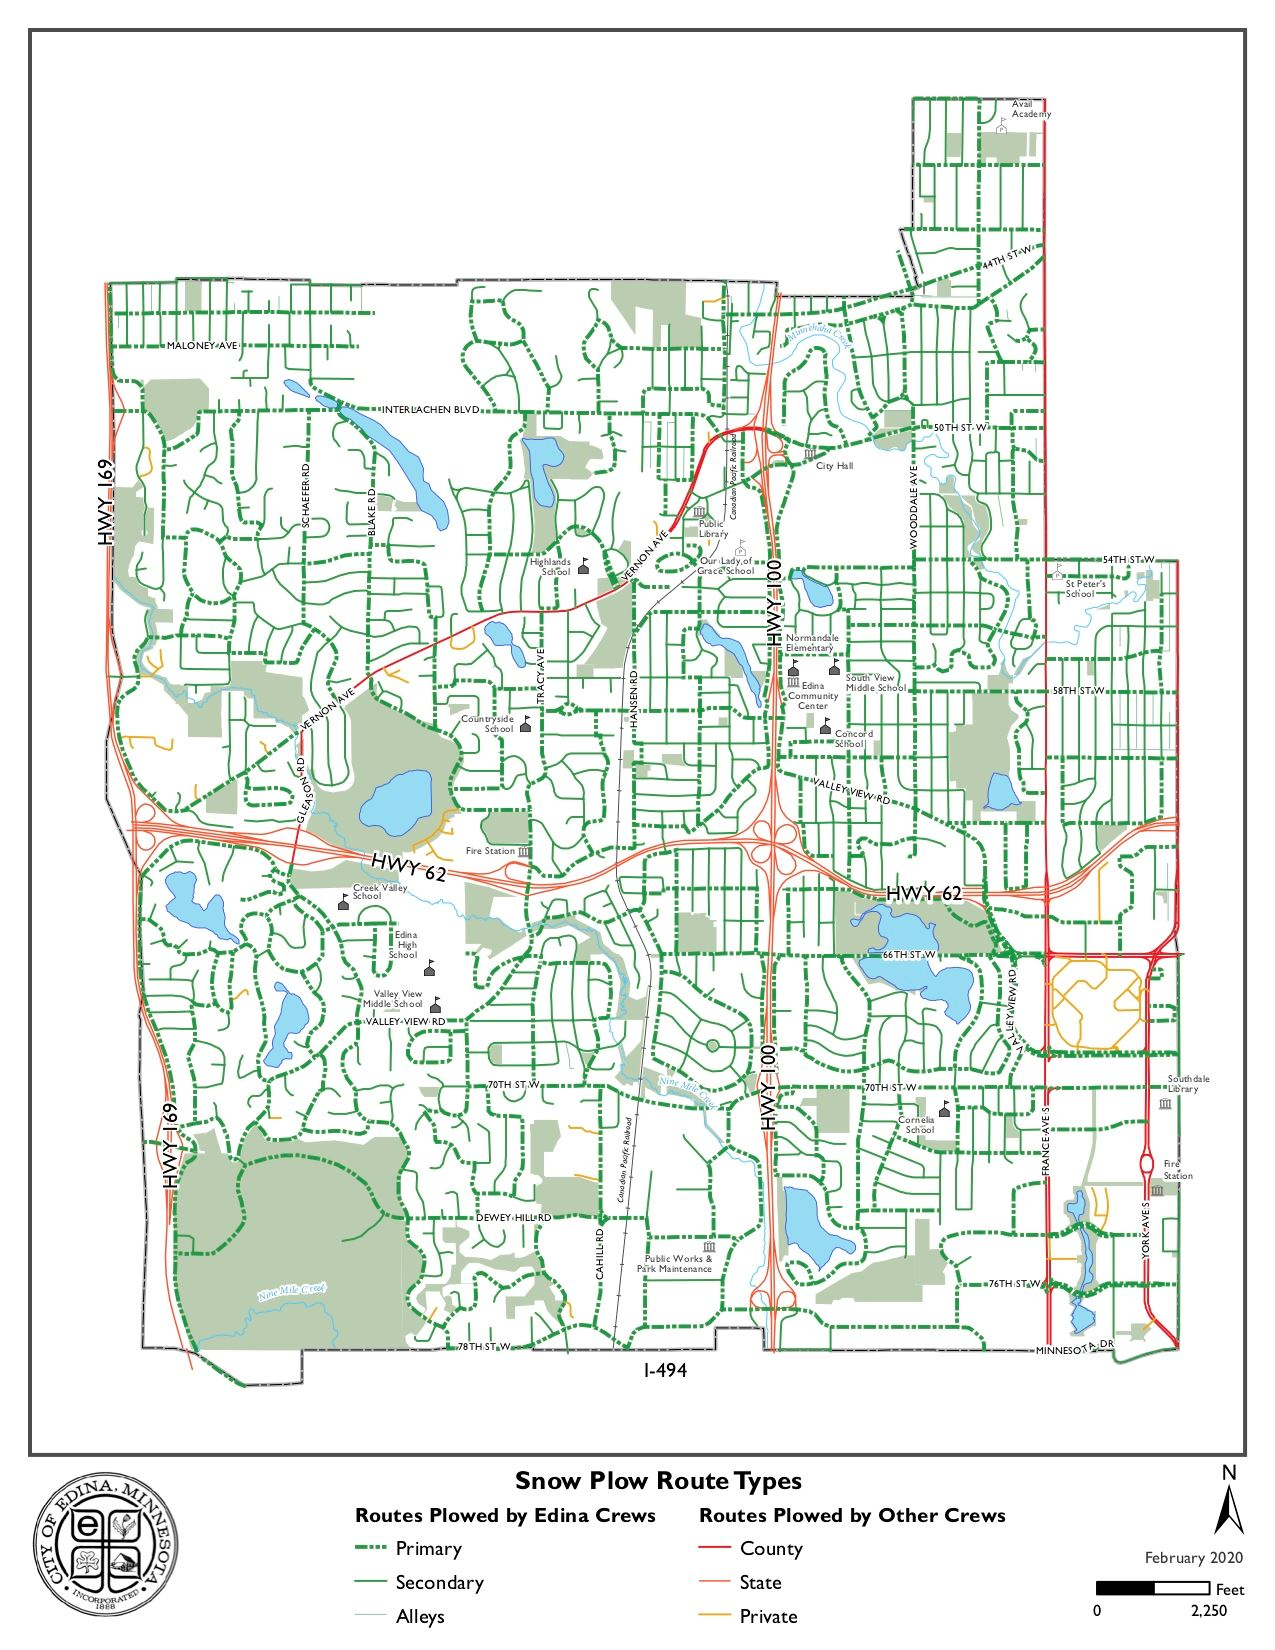 Edina Snow Plow Routes Map (PDF)